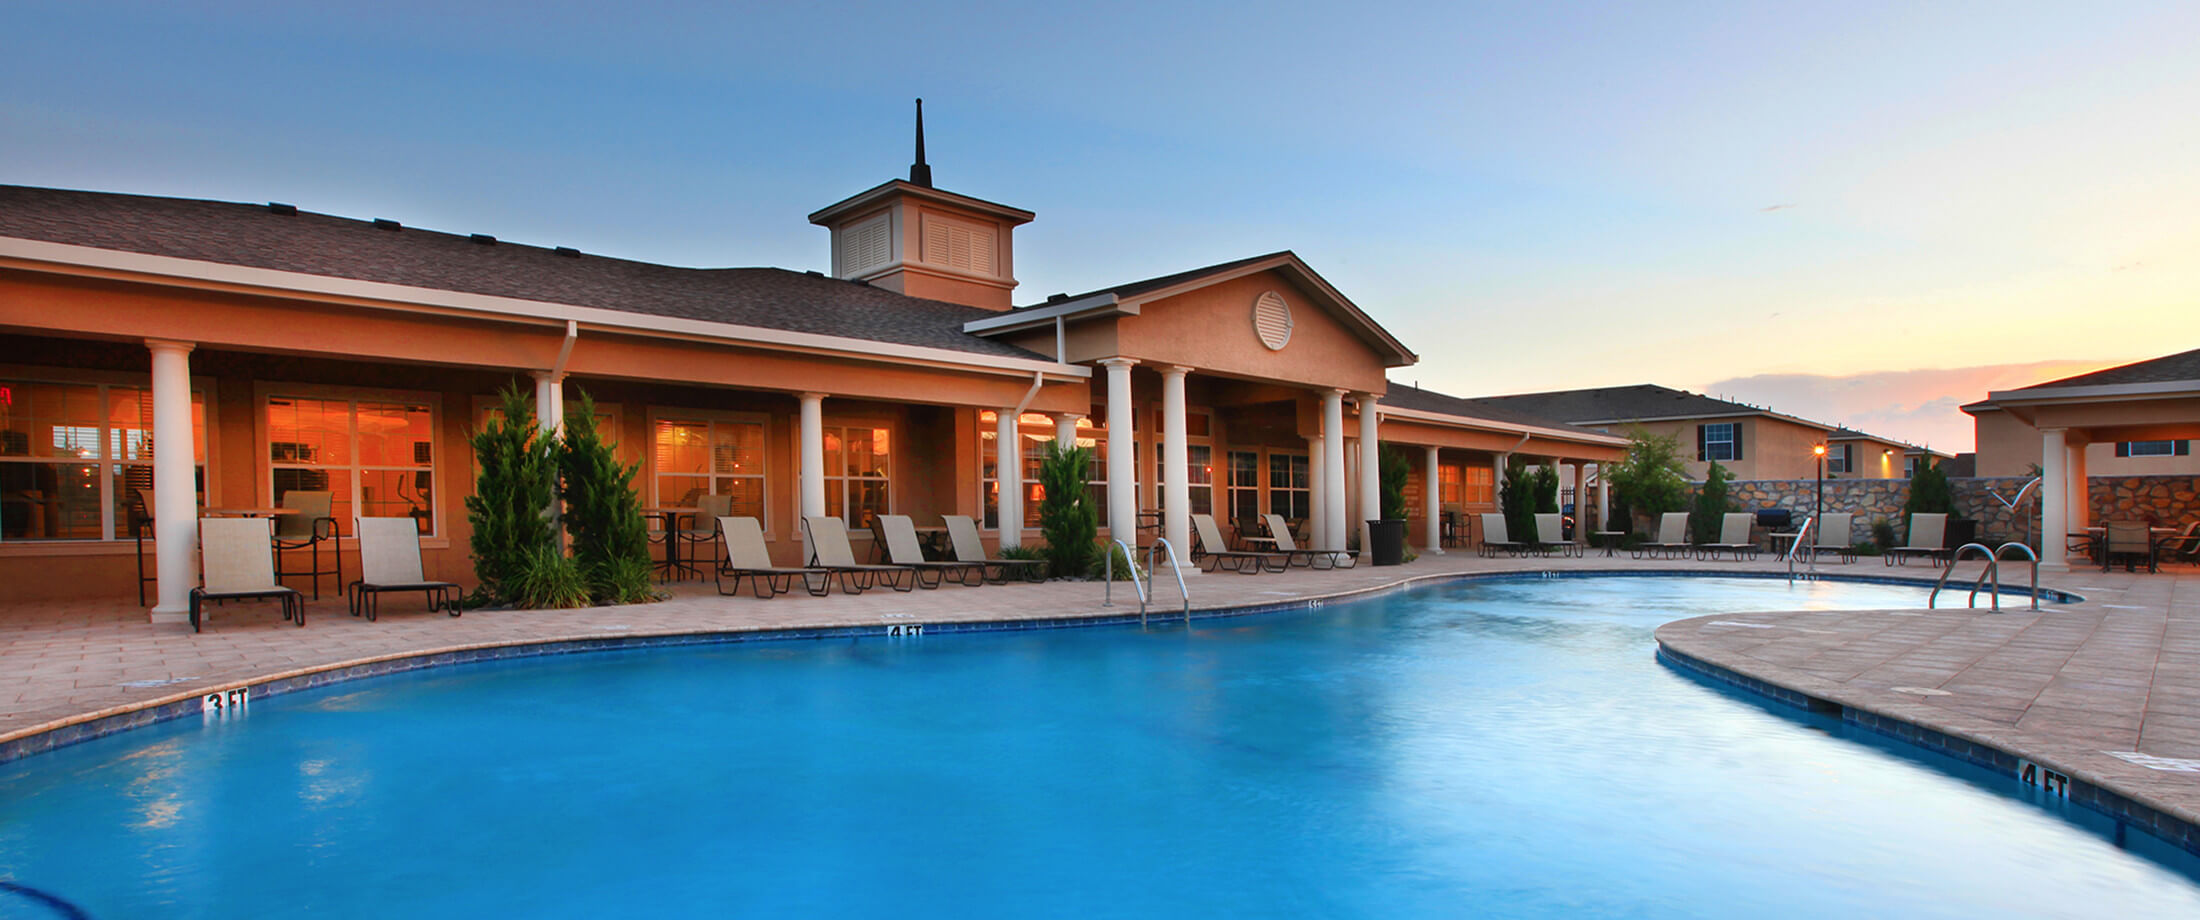 The Cottages At Edgemere Apartments In El Paso Tx